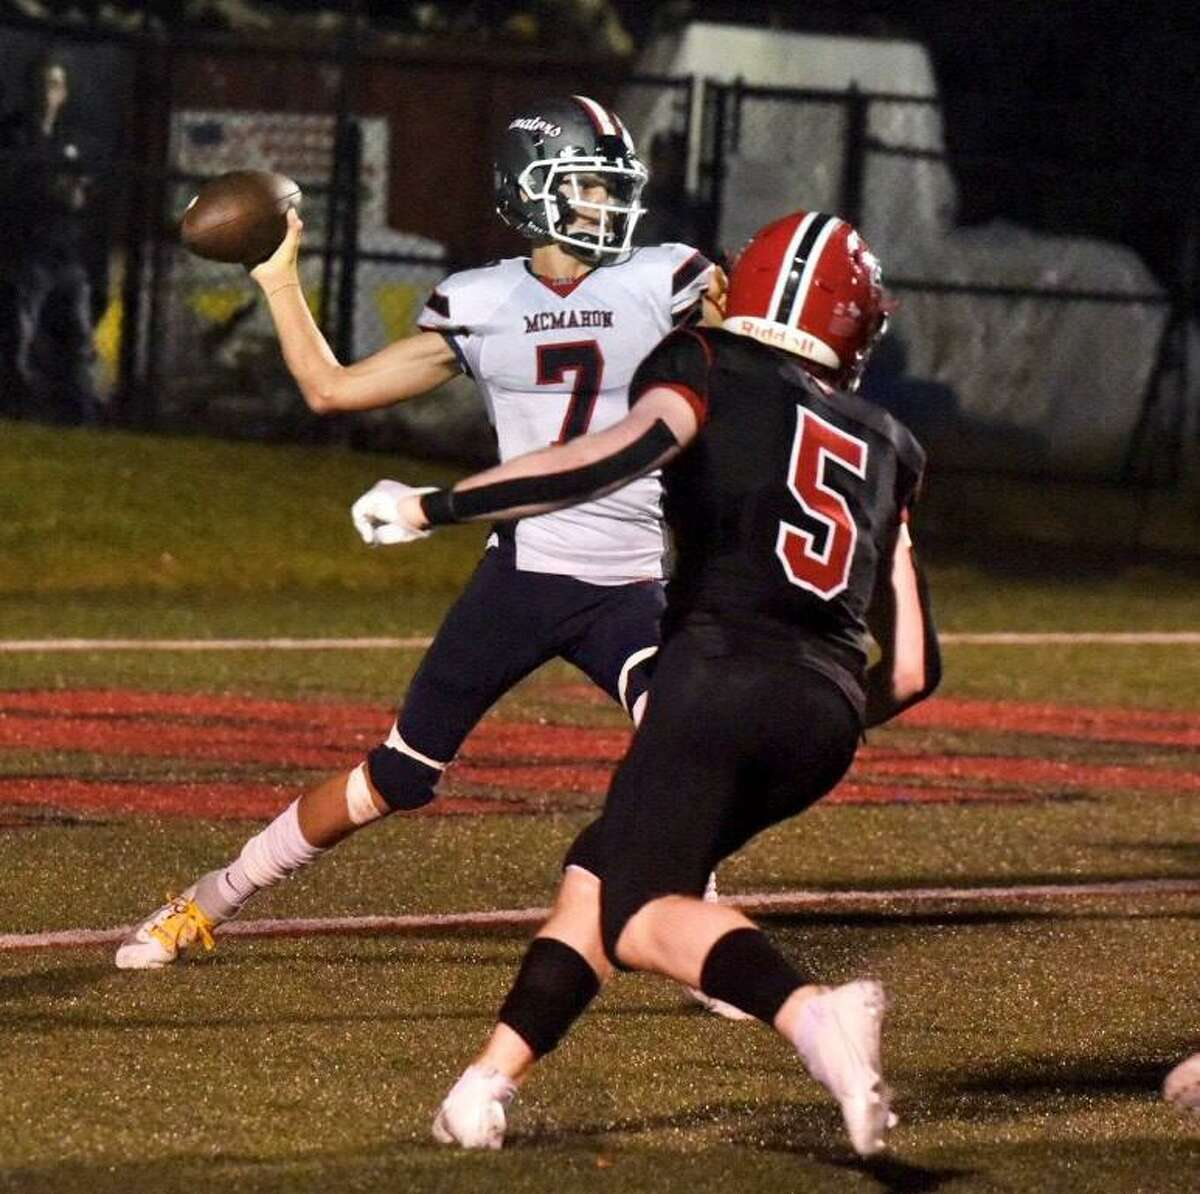 Brien McMahon quarterback Callum Letters (7) passes while pressured by New Canaan's Ryan Werneburg (5) during a football game on Friday, Sept. 17, 2021 at Dunning Stadium in New Canaan, Conn.